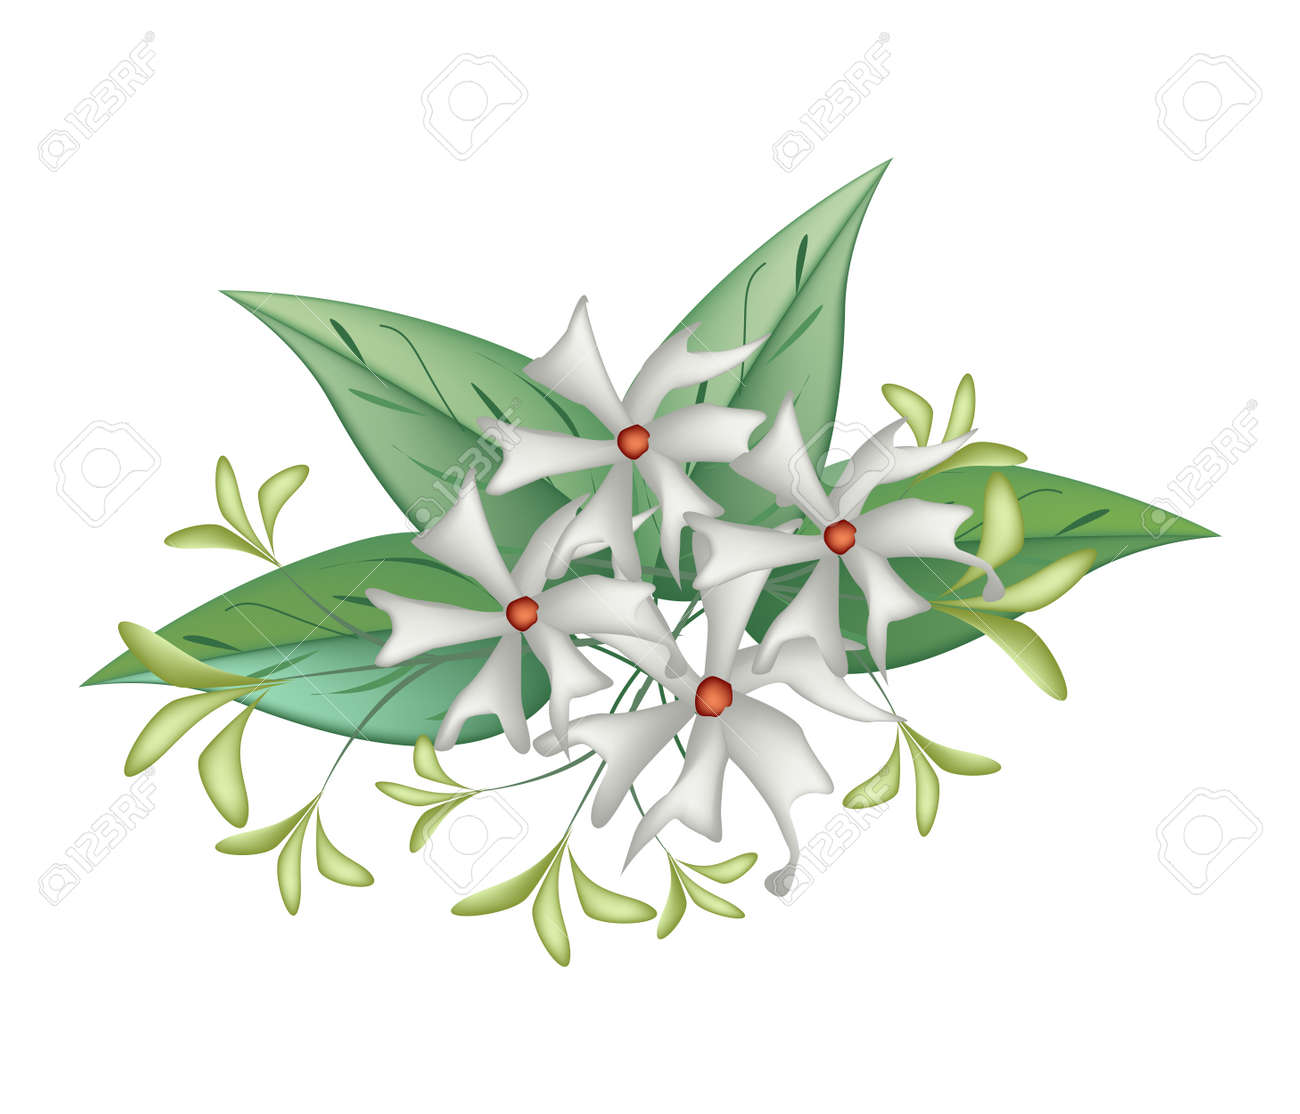 Beautiful Flower Bunch Of White Tuberose Flowers Or Night Blooming Royalty Free Cliparts Vectors And Stock Illustration Image 44900785